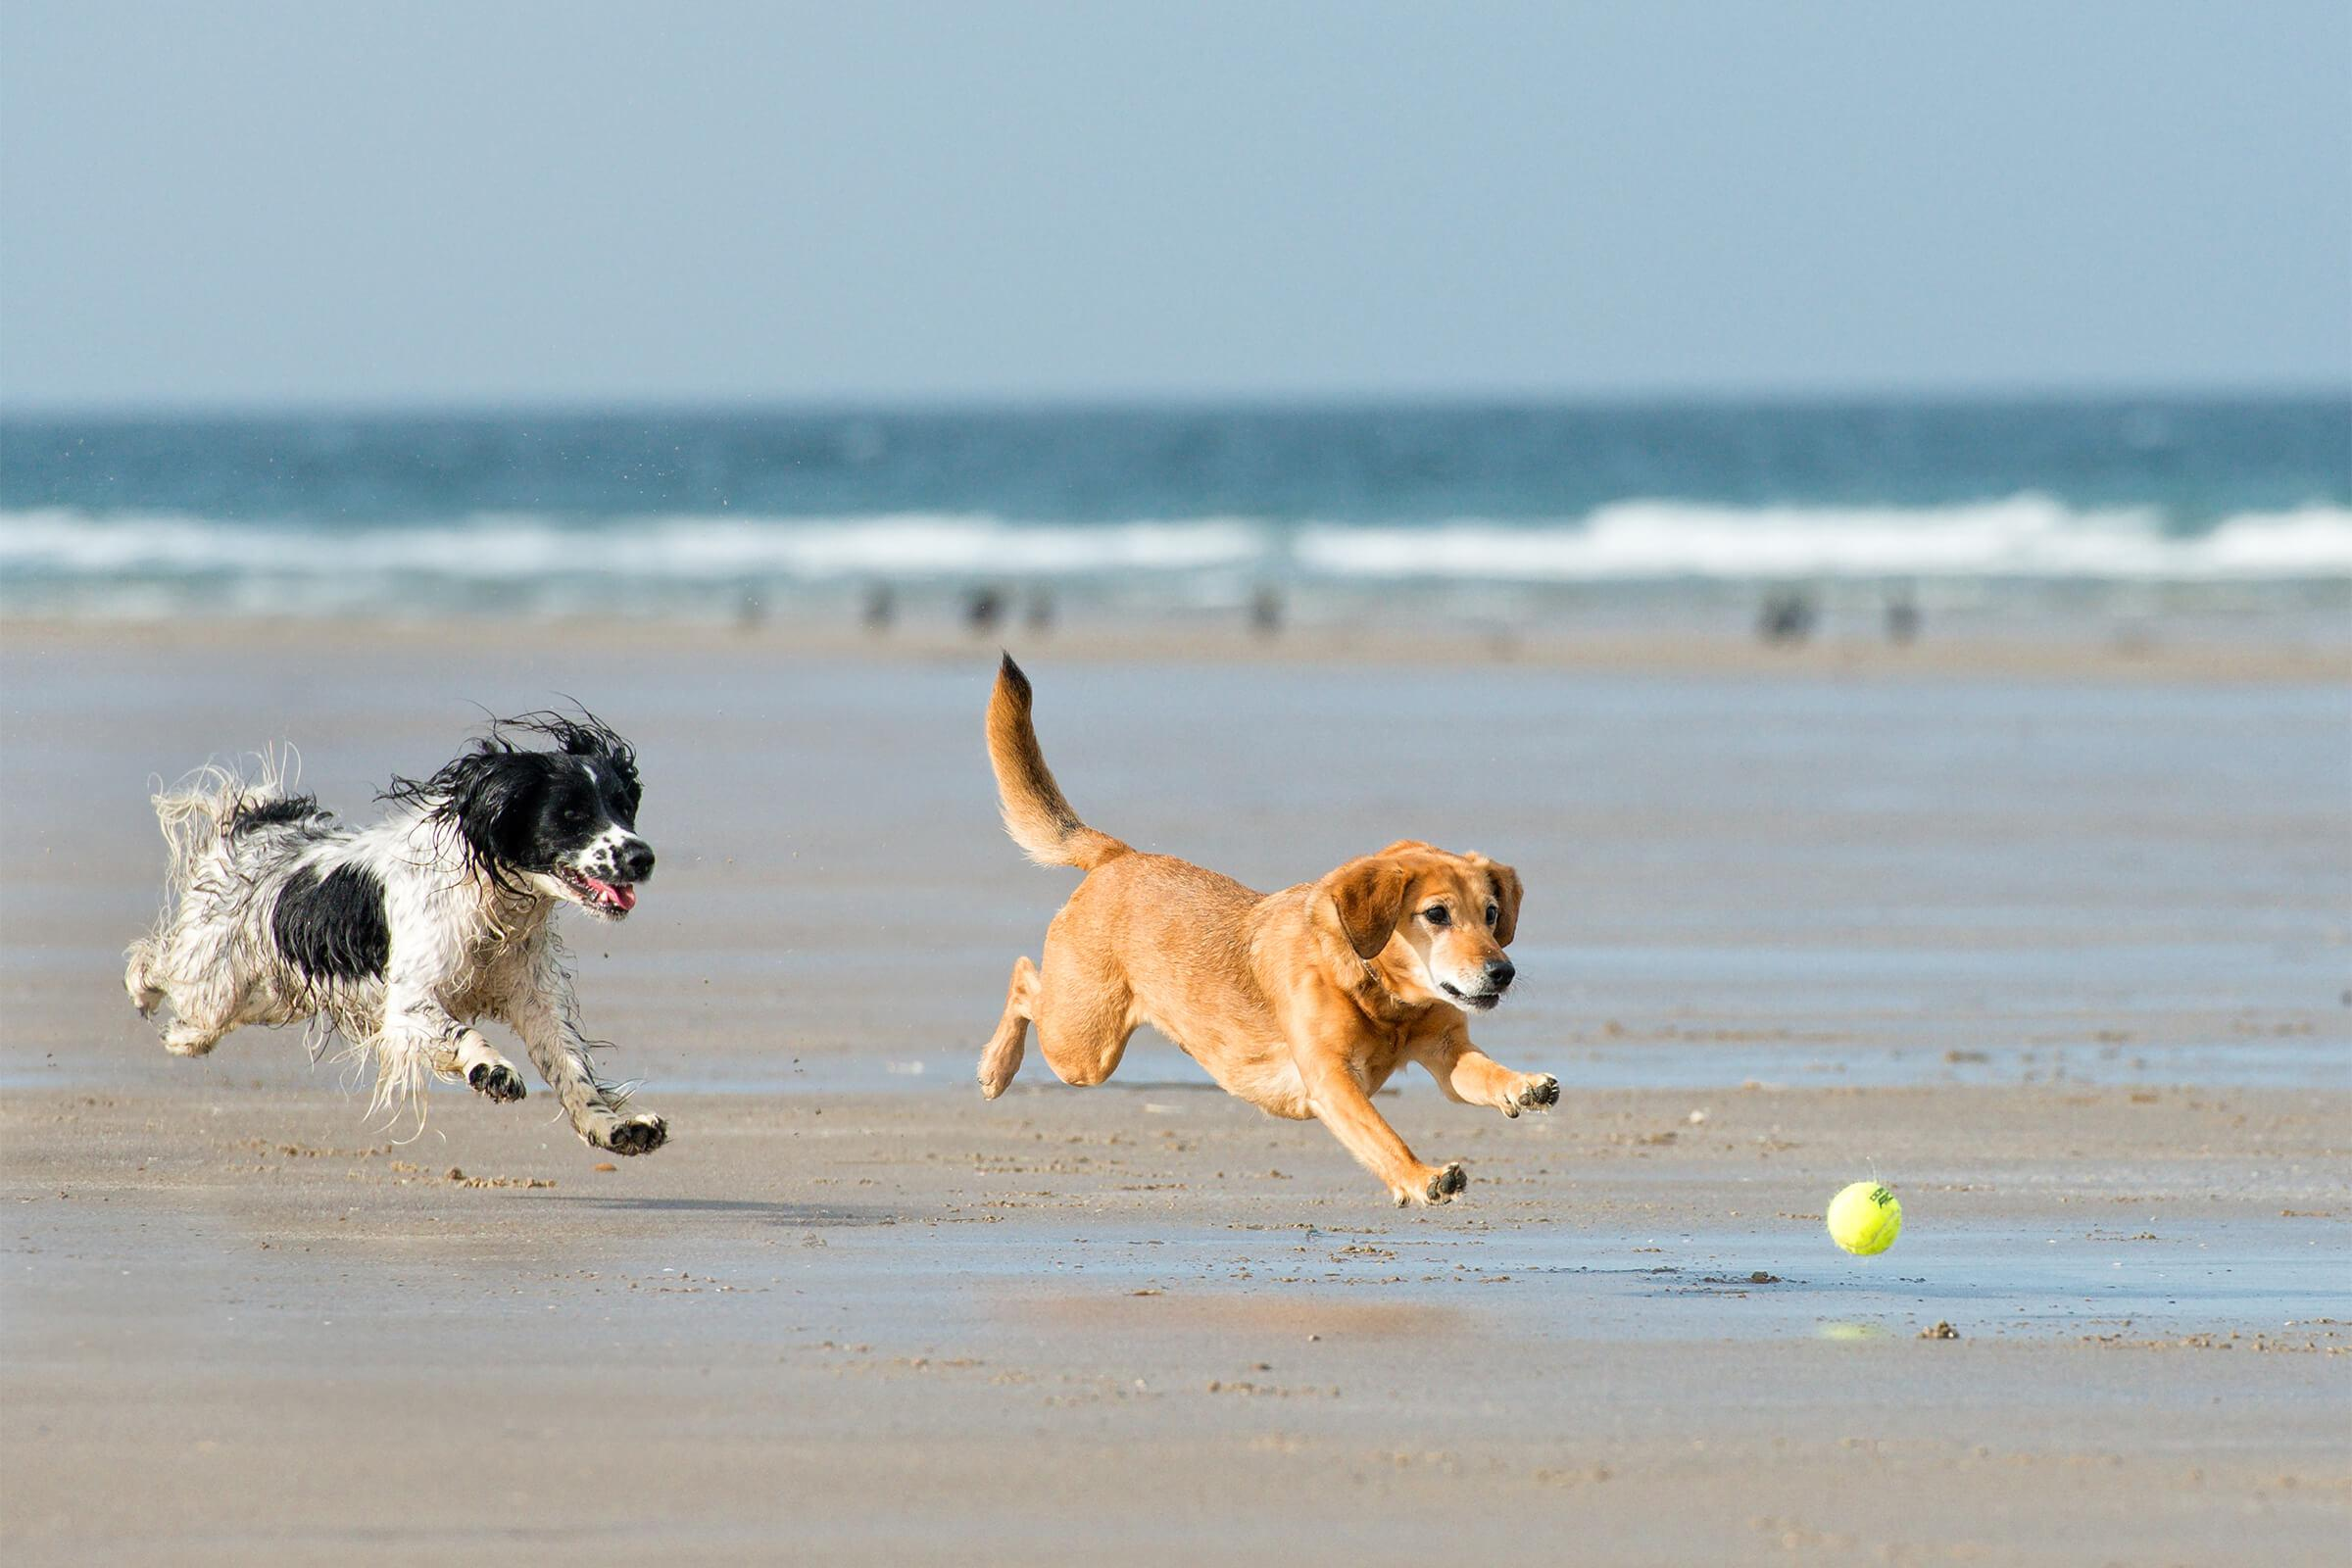 a dog walking on a sandy beach next to the ocean